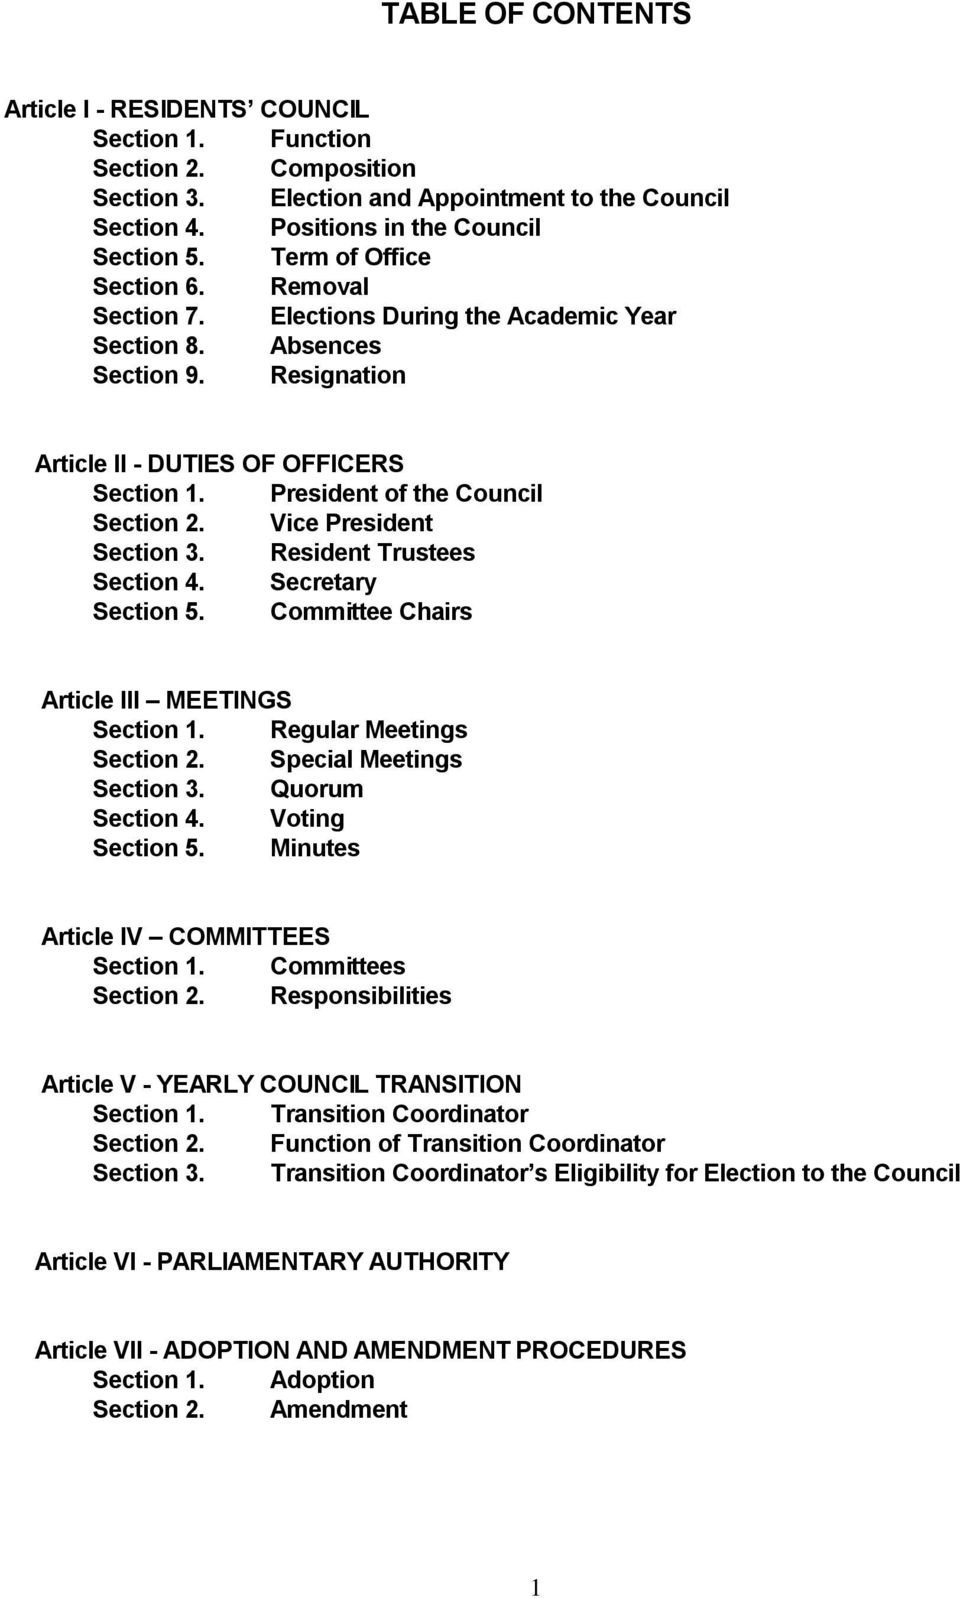 President of the Council Section 2. Vice President Section 3. Resident Trustees Section 4. Secretary Section 5. Committee Chairs Article III MEETINGS Section 1. Regular Meetings Section 2.